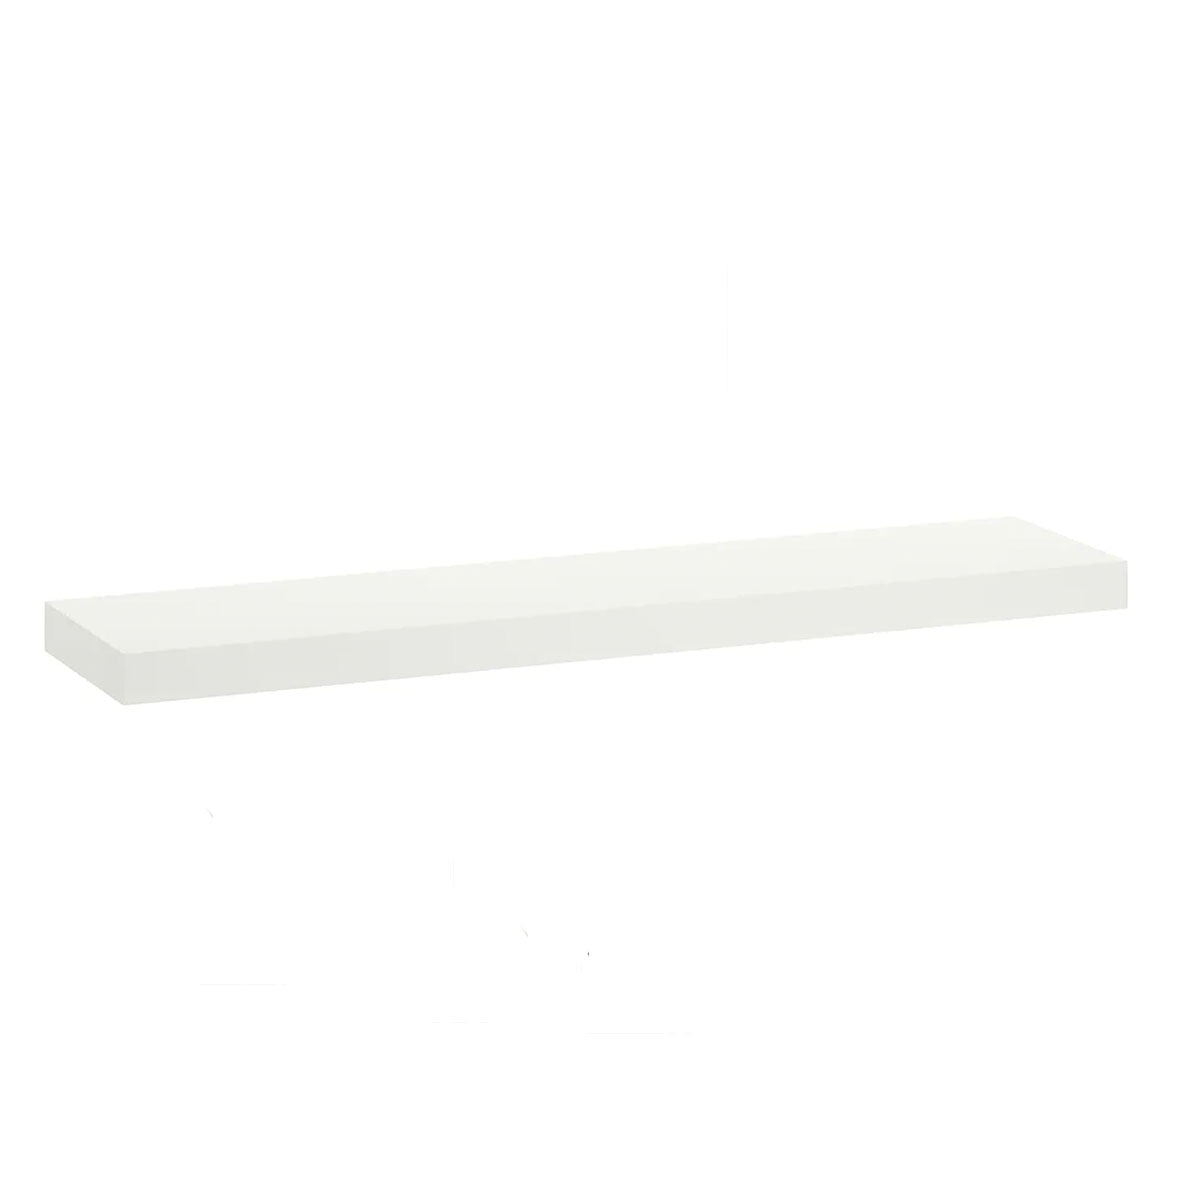 IKEA Lack Floating Shelf 110x26cm, White